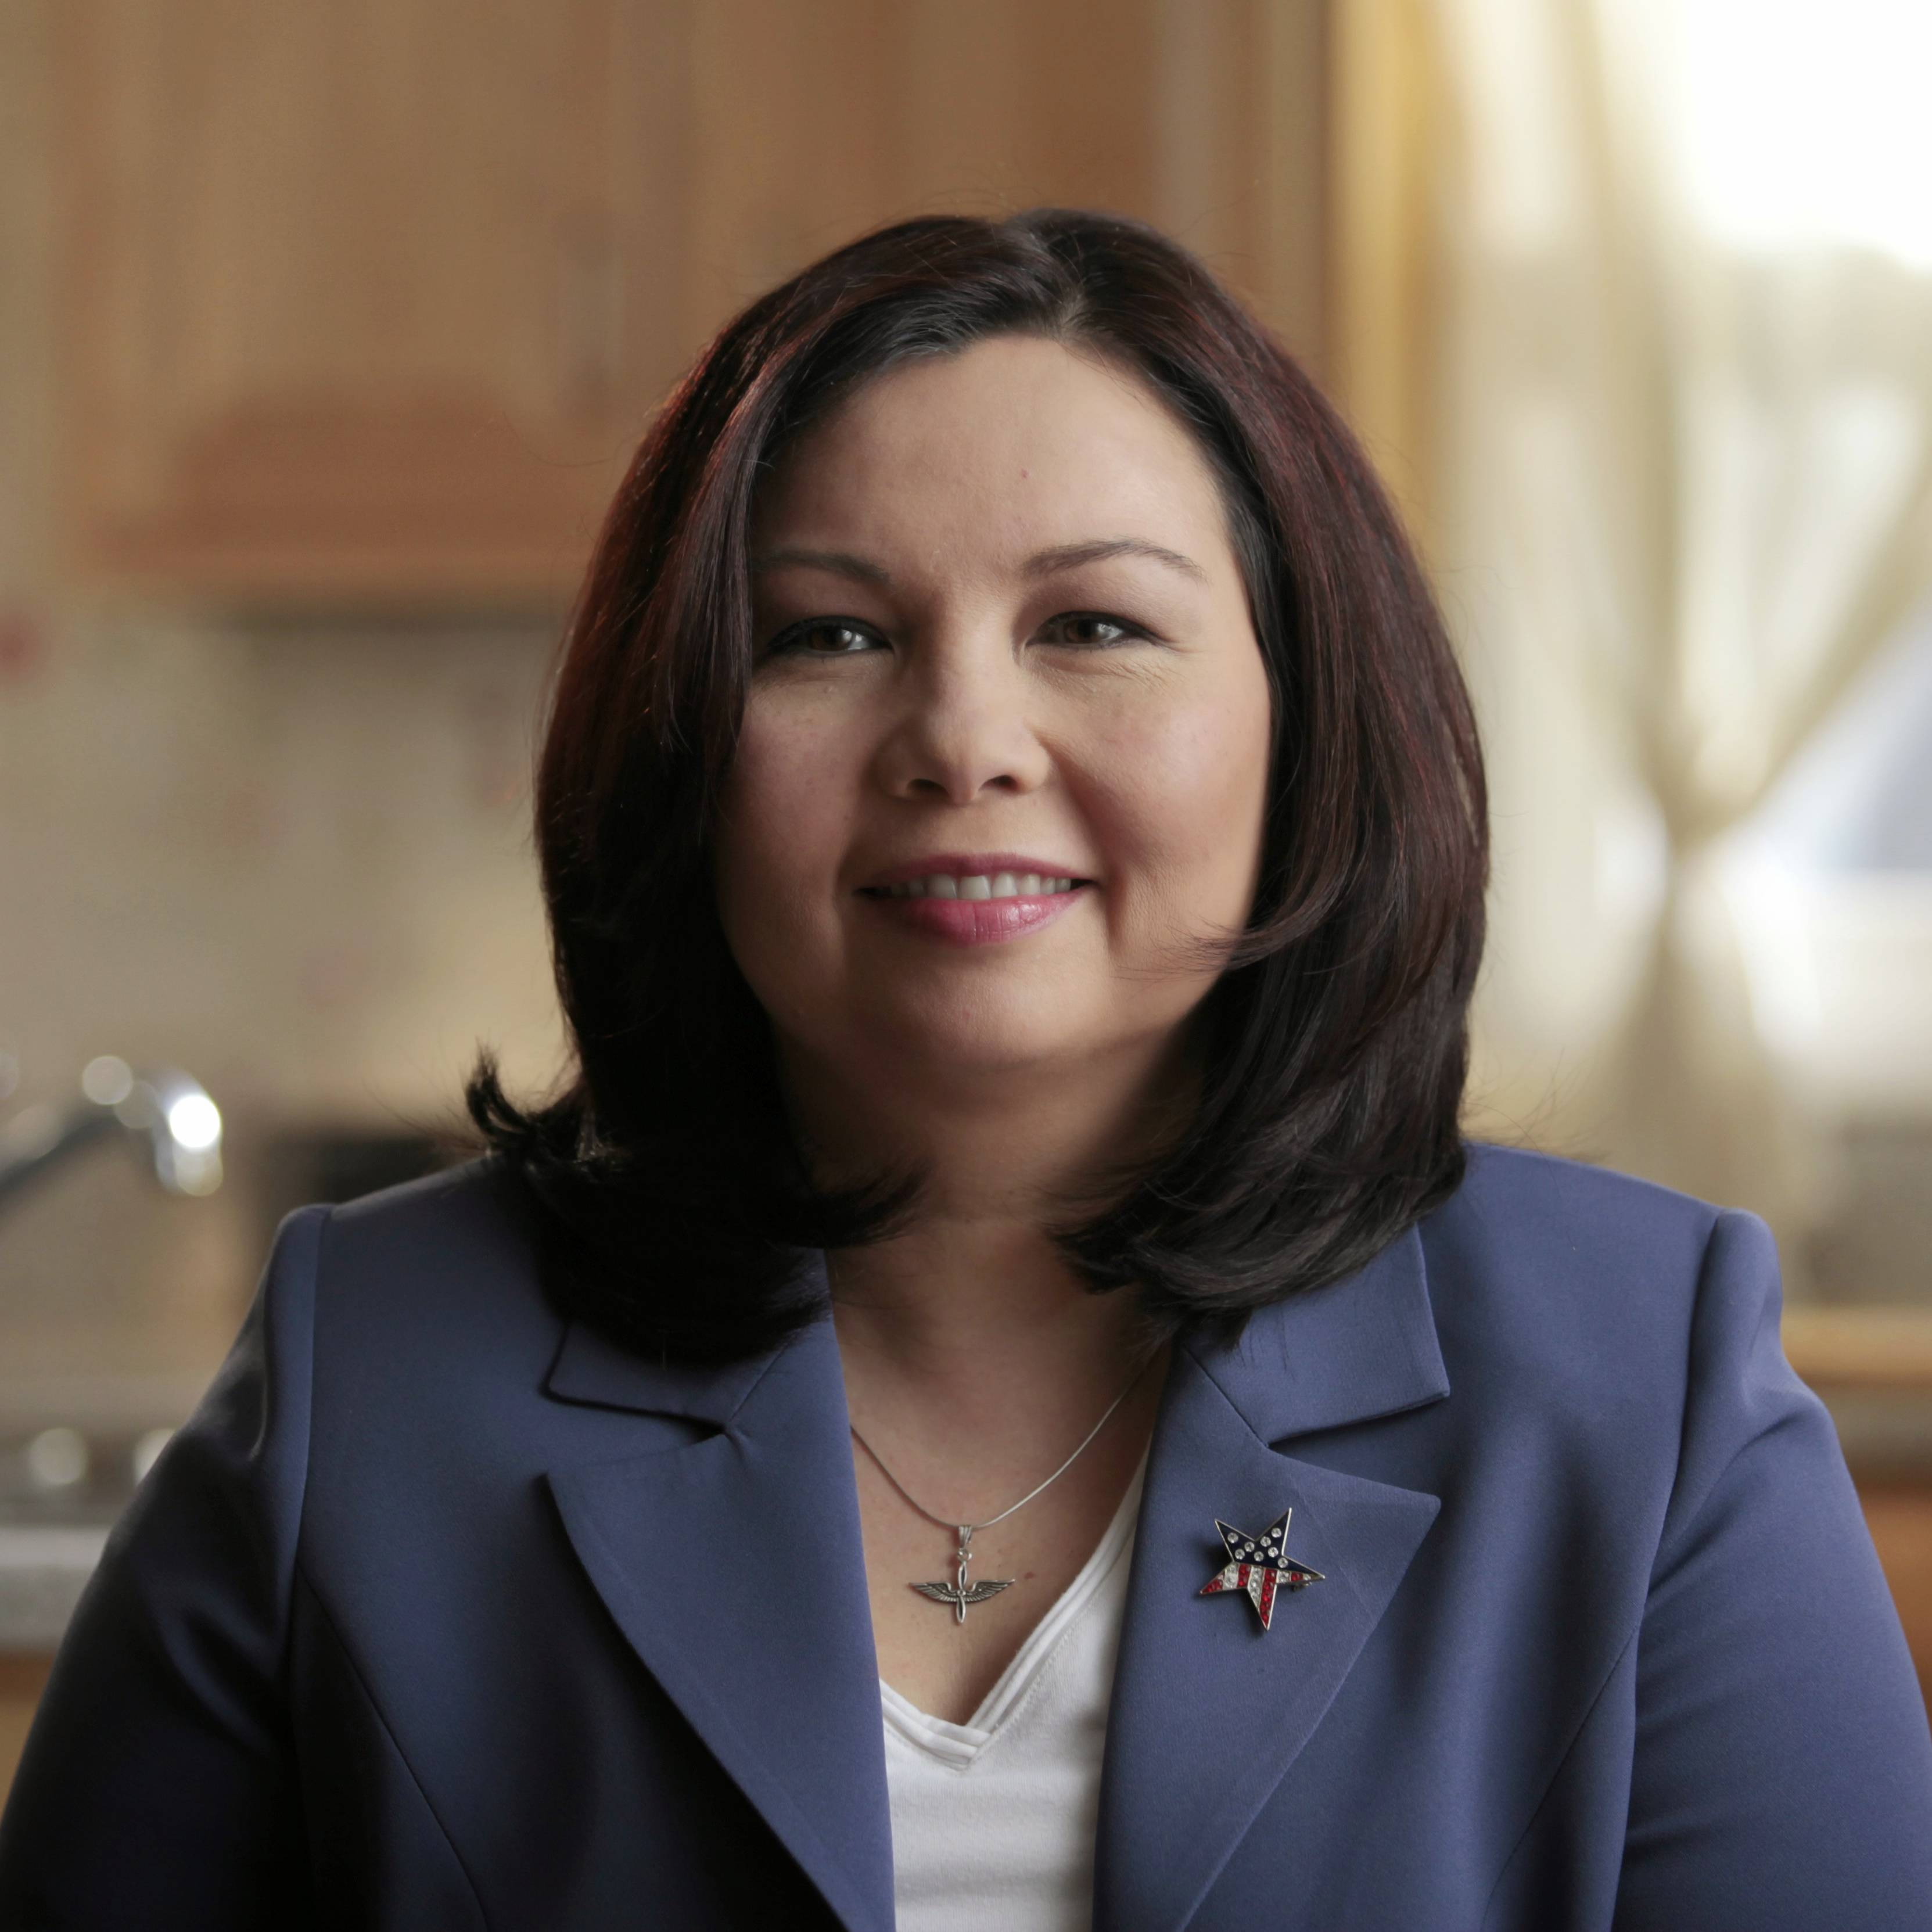 Judge gives parties in Duckworth suit until Aug. 24 to settle